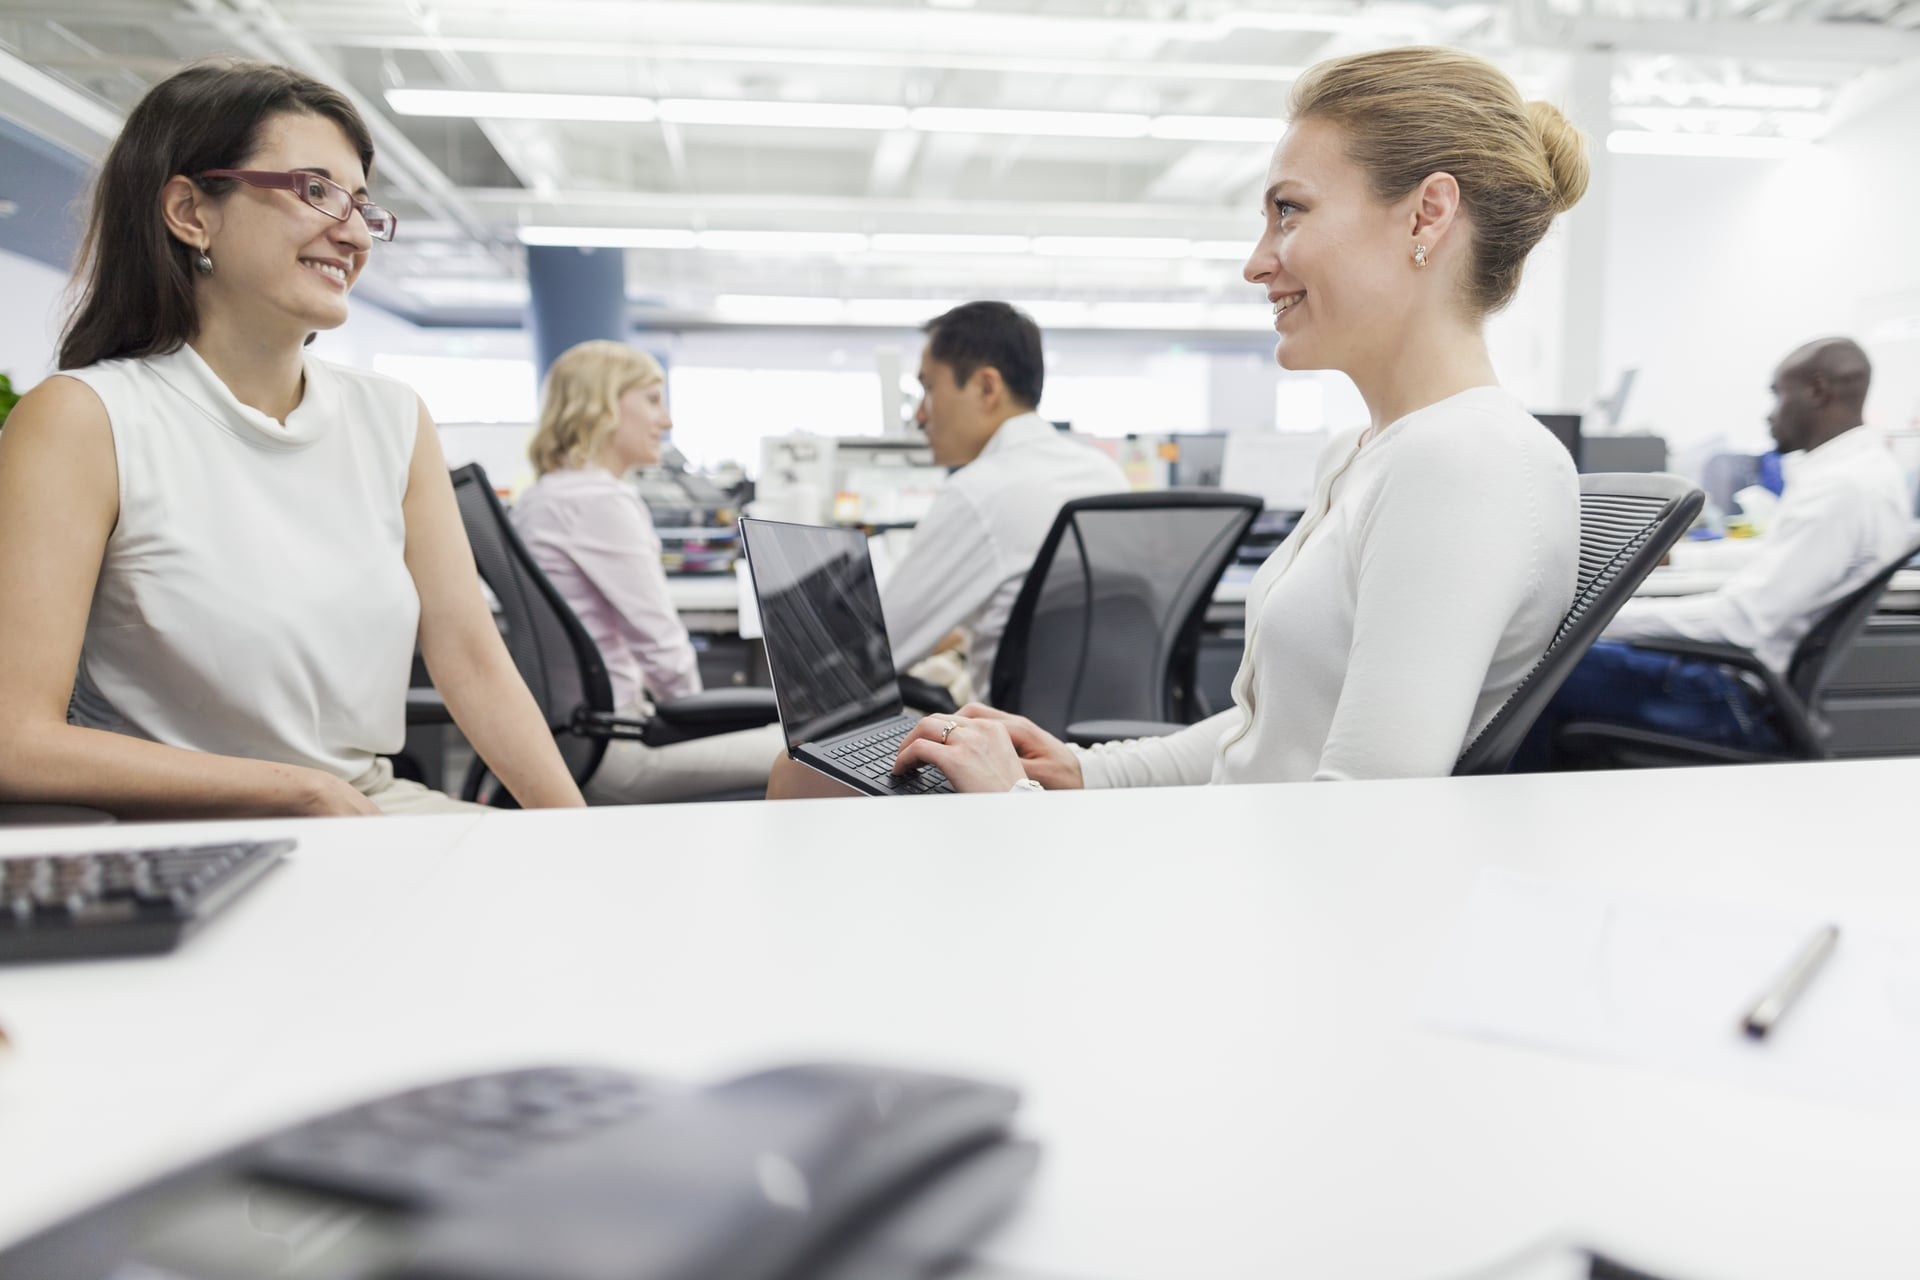 women-talking-together-in-office